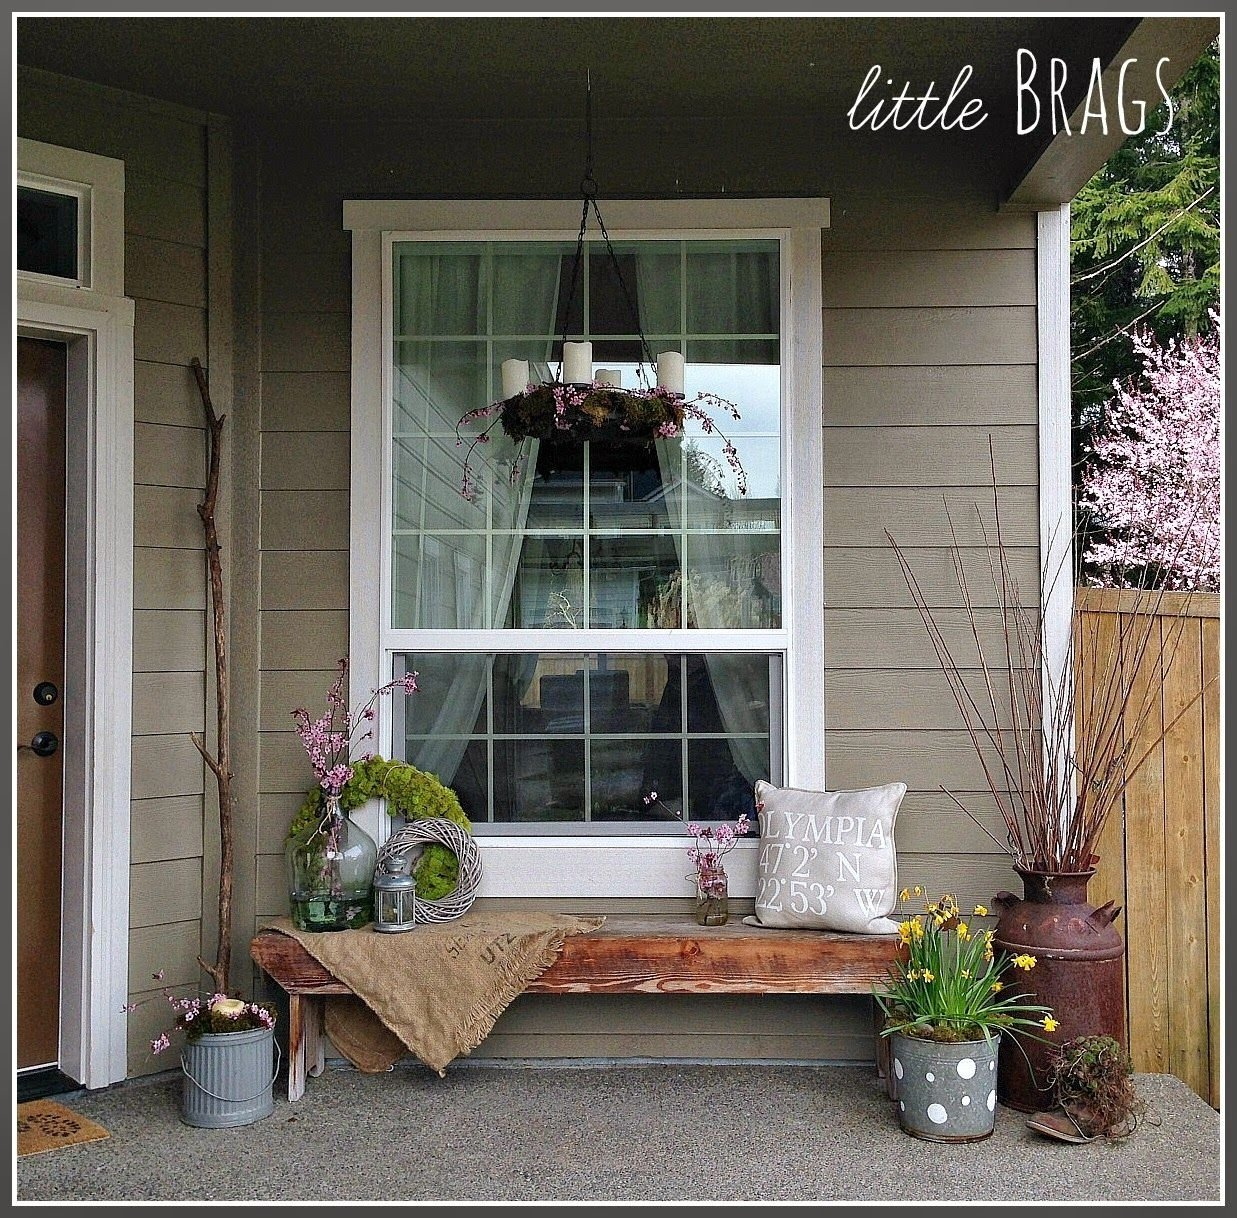 10 Ideal Front Porch Decorating Ideas For Spring easy diy spring crafts porch spring and front porches 2021